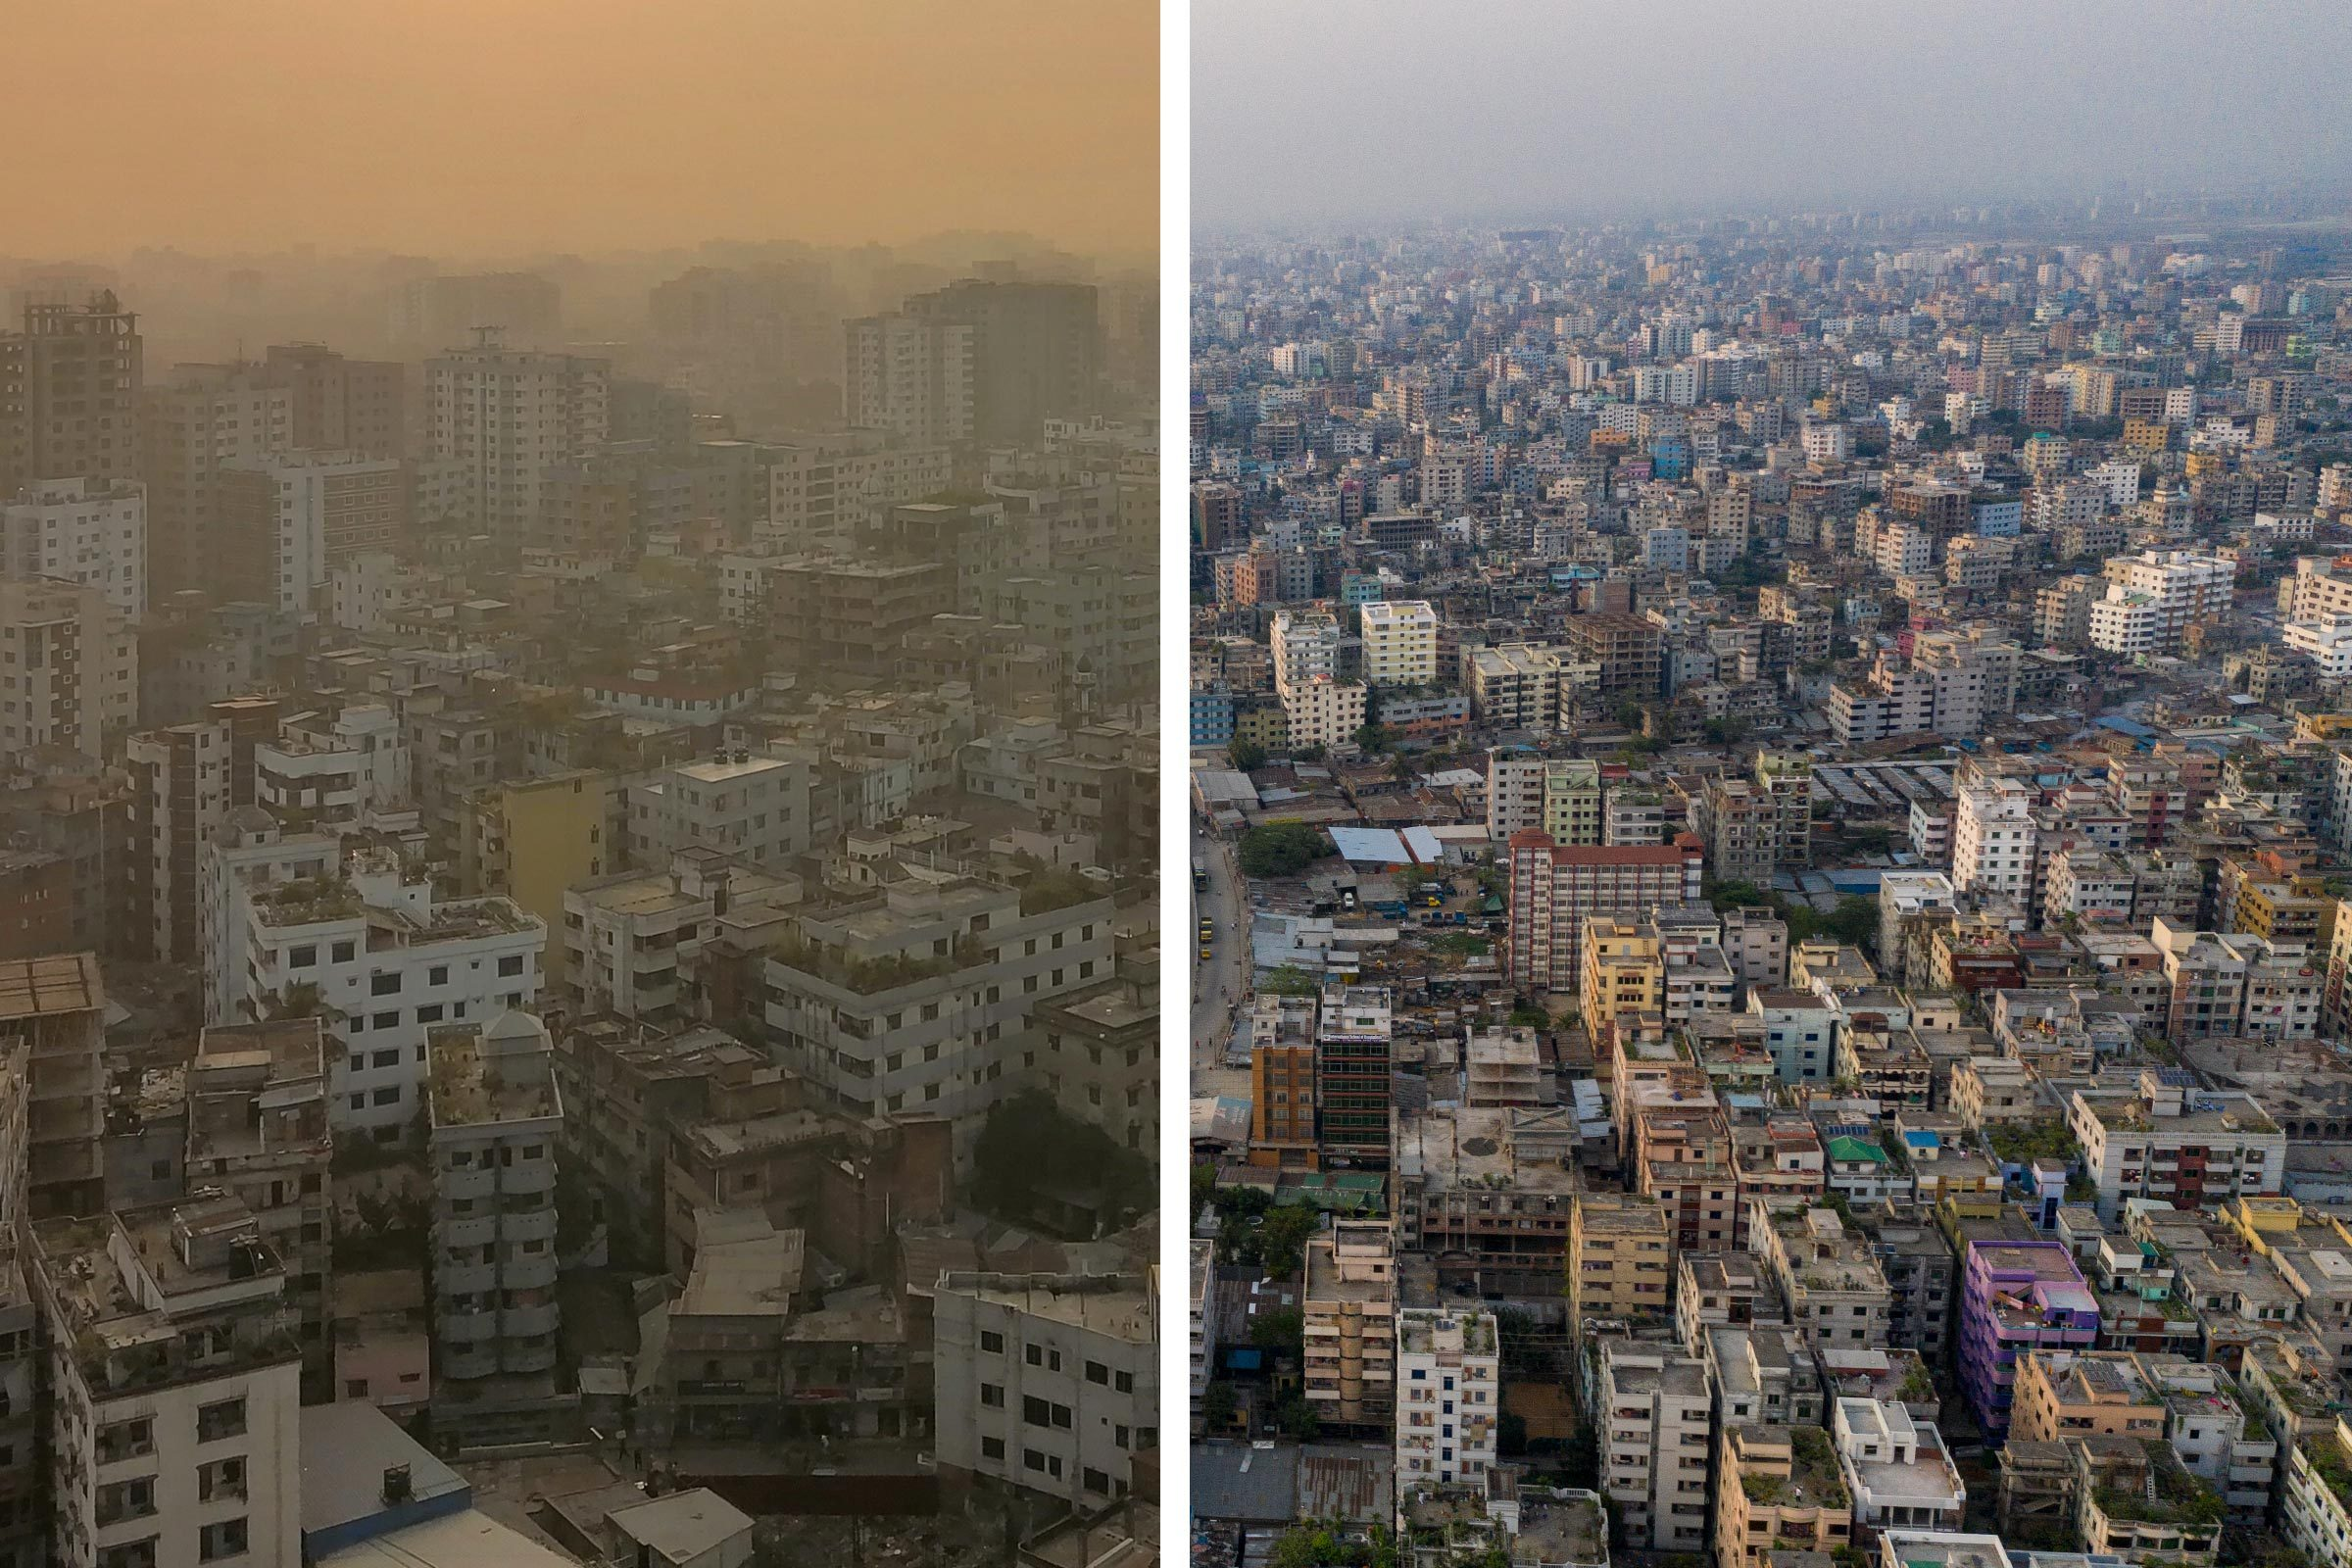 Before/After Dhaka